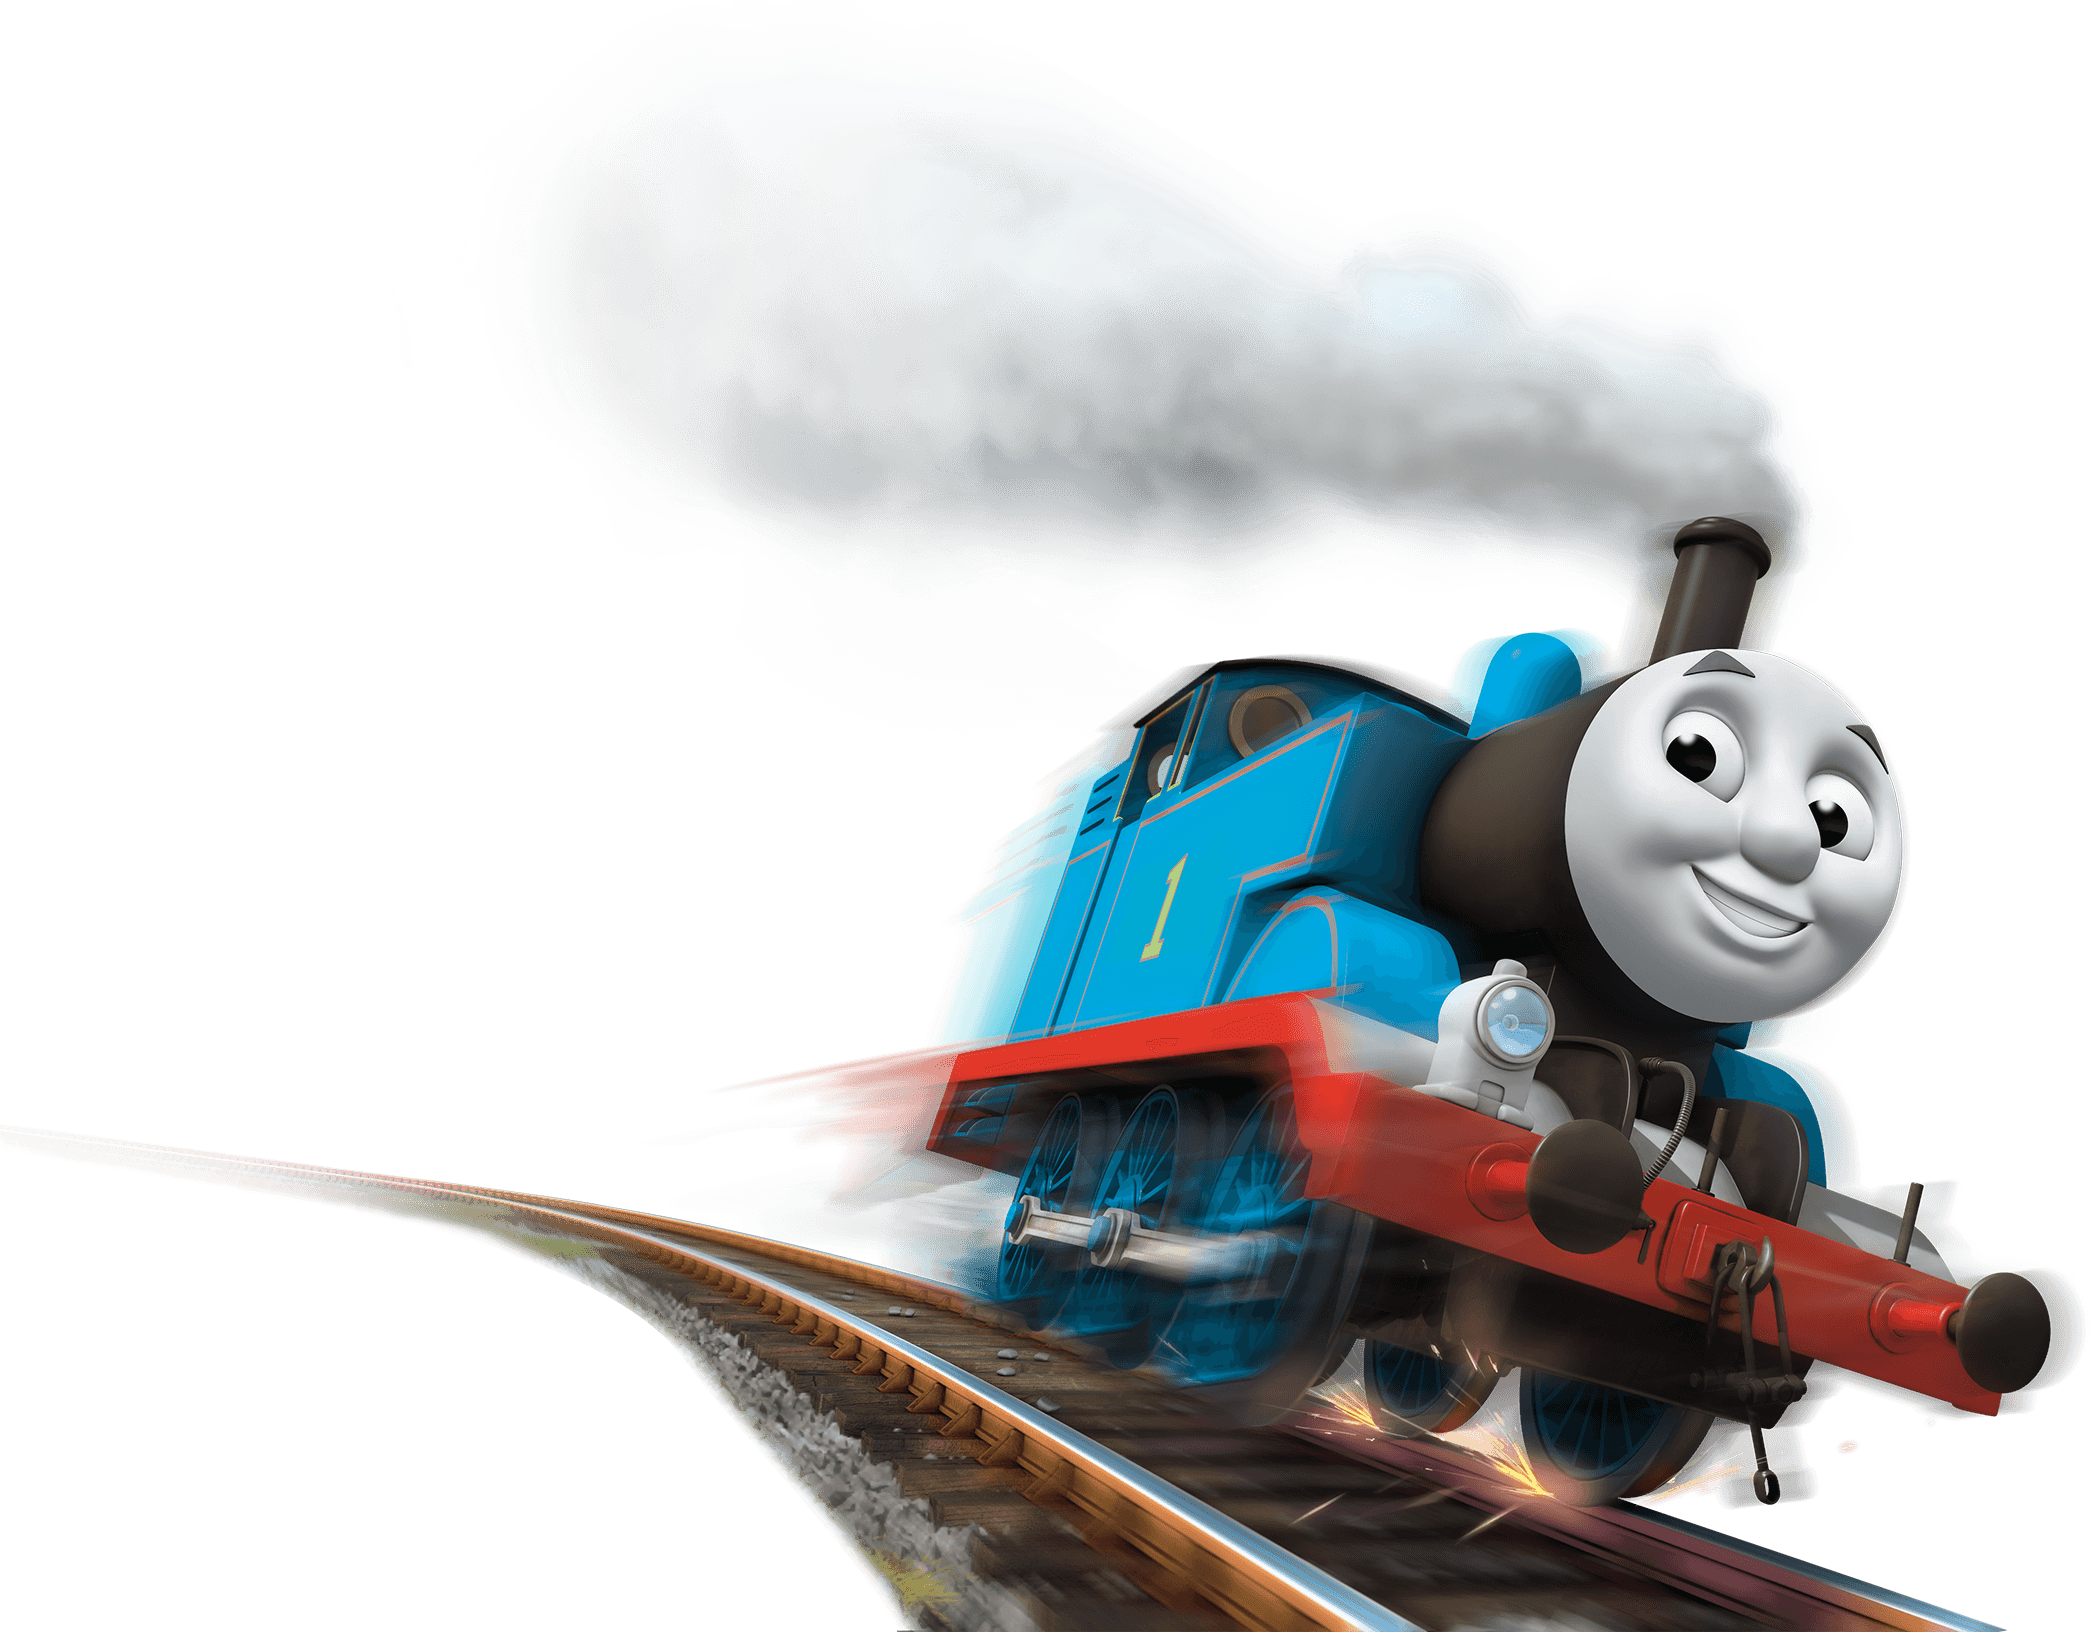 thomas the train games free online to play